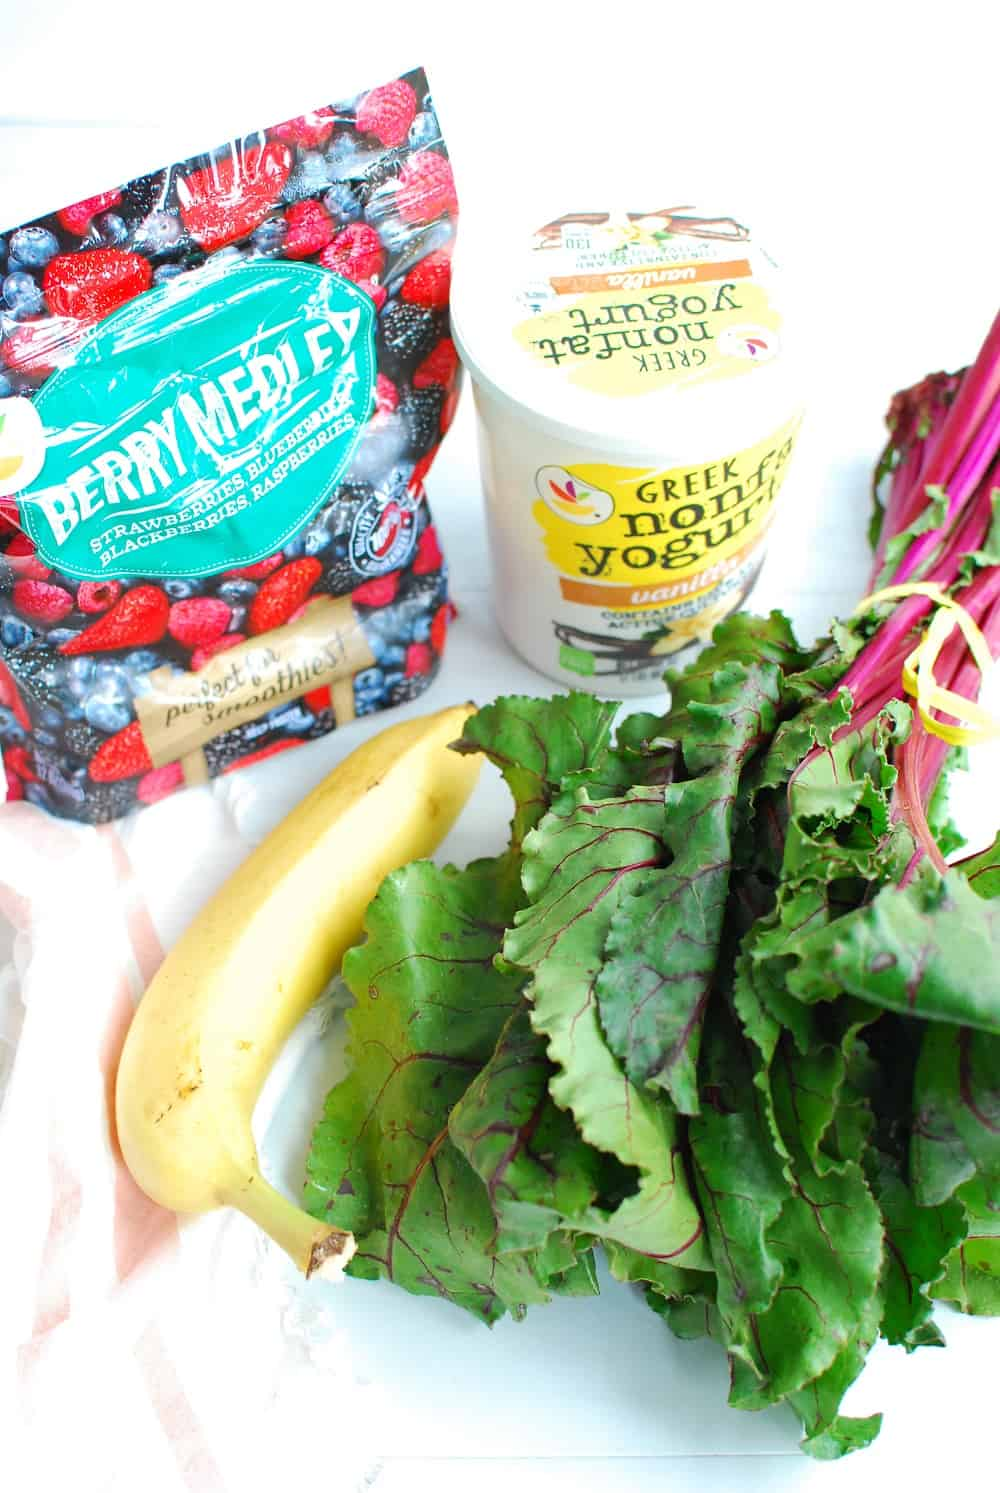 a bag of frozen berries, a container of greek yogurt, a banana, and a bunch of beet greens